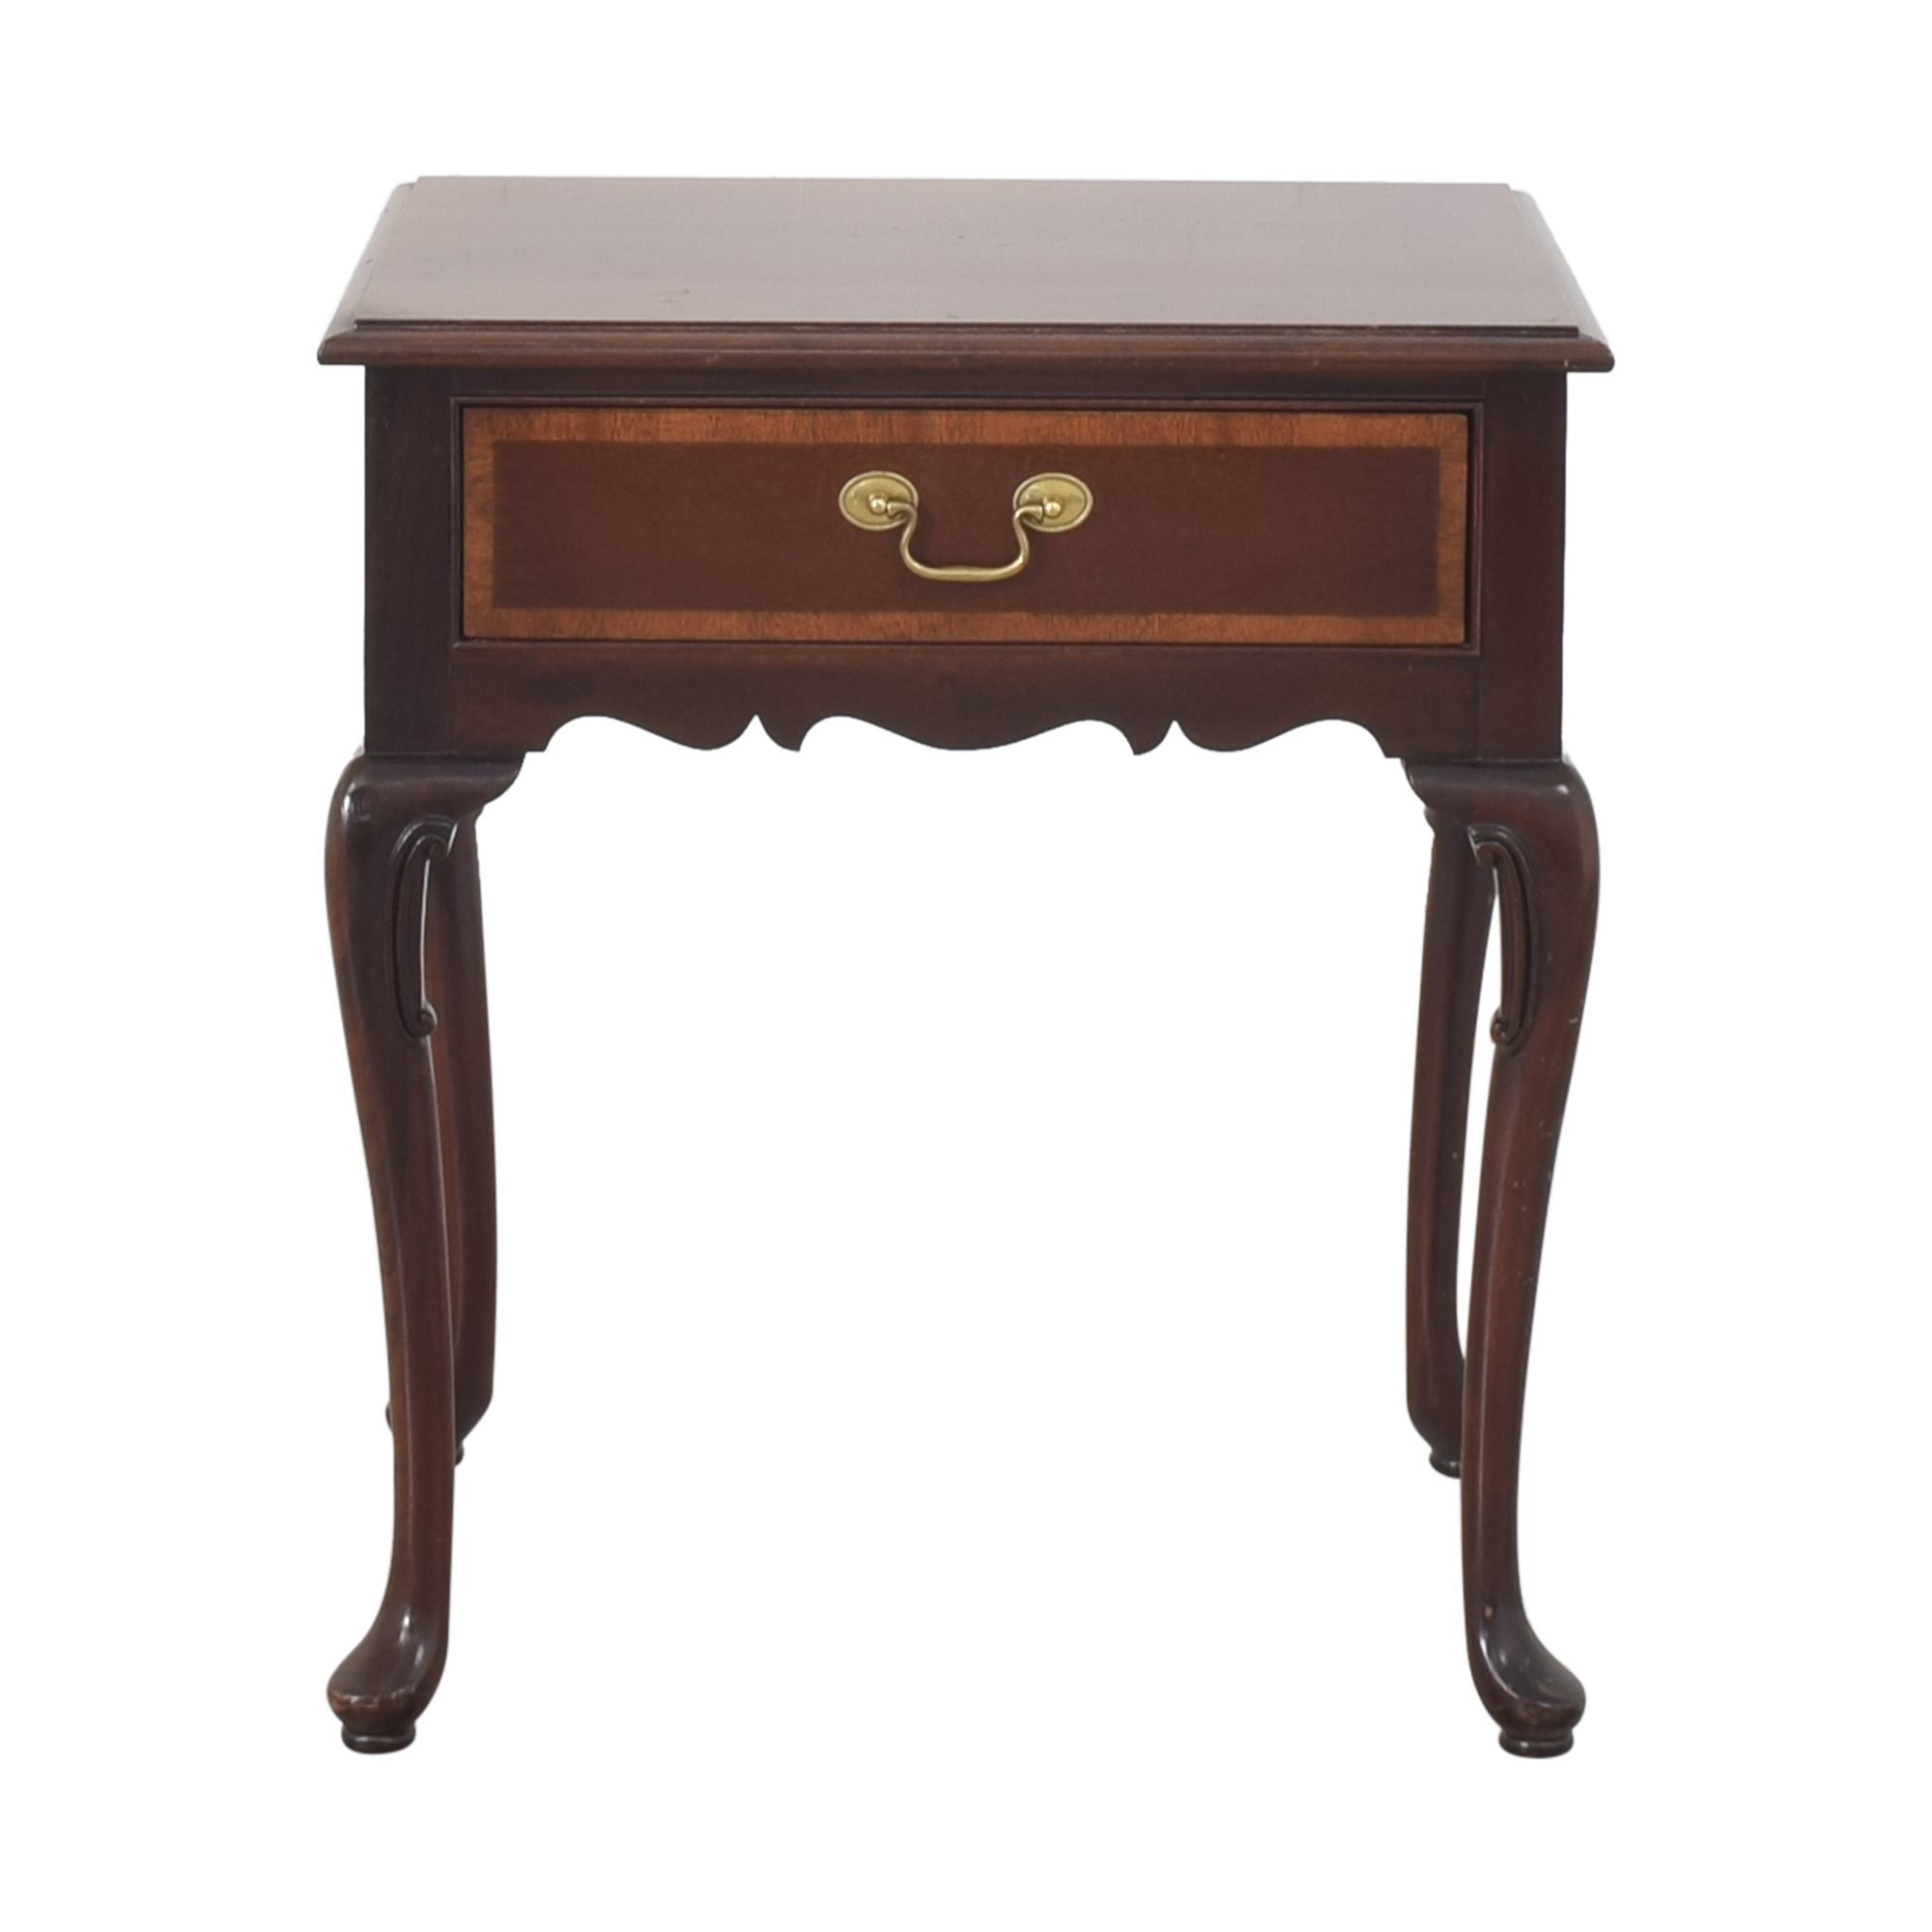 Hickory Chair American Masterpiece Collection Nightstand / End Tables